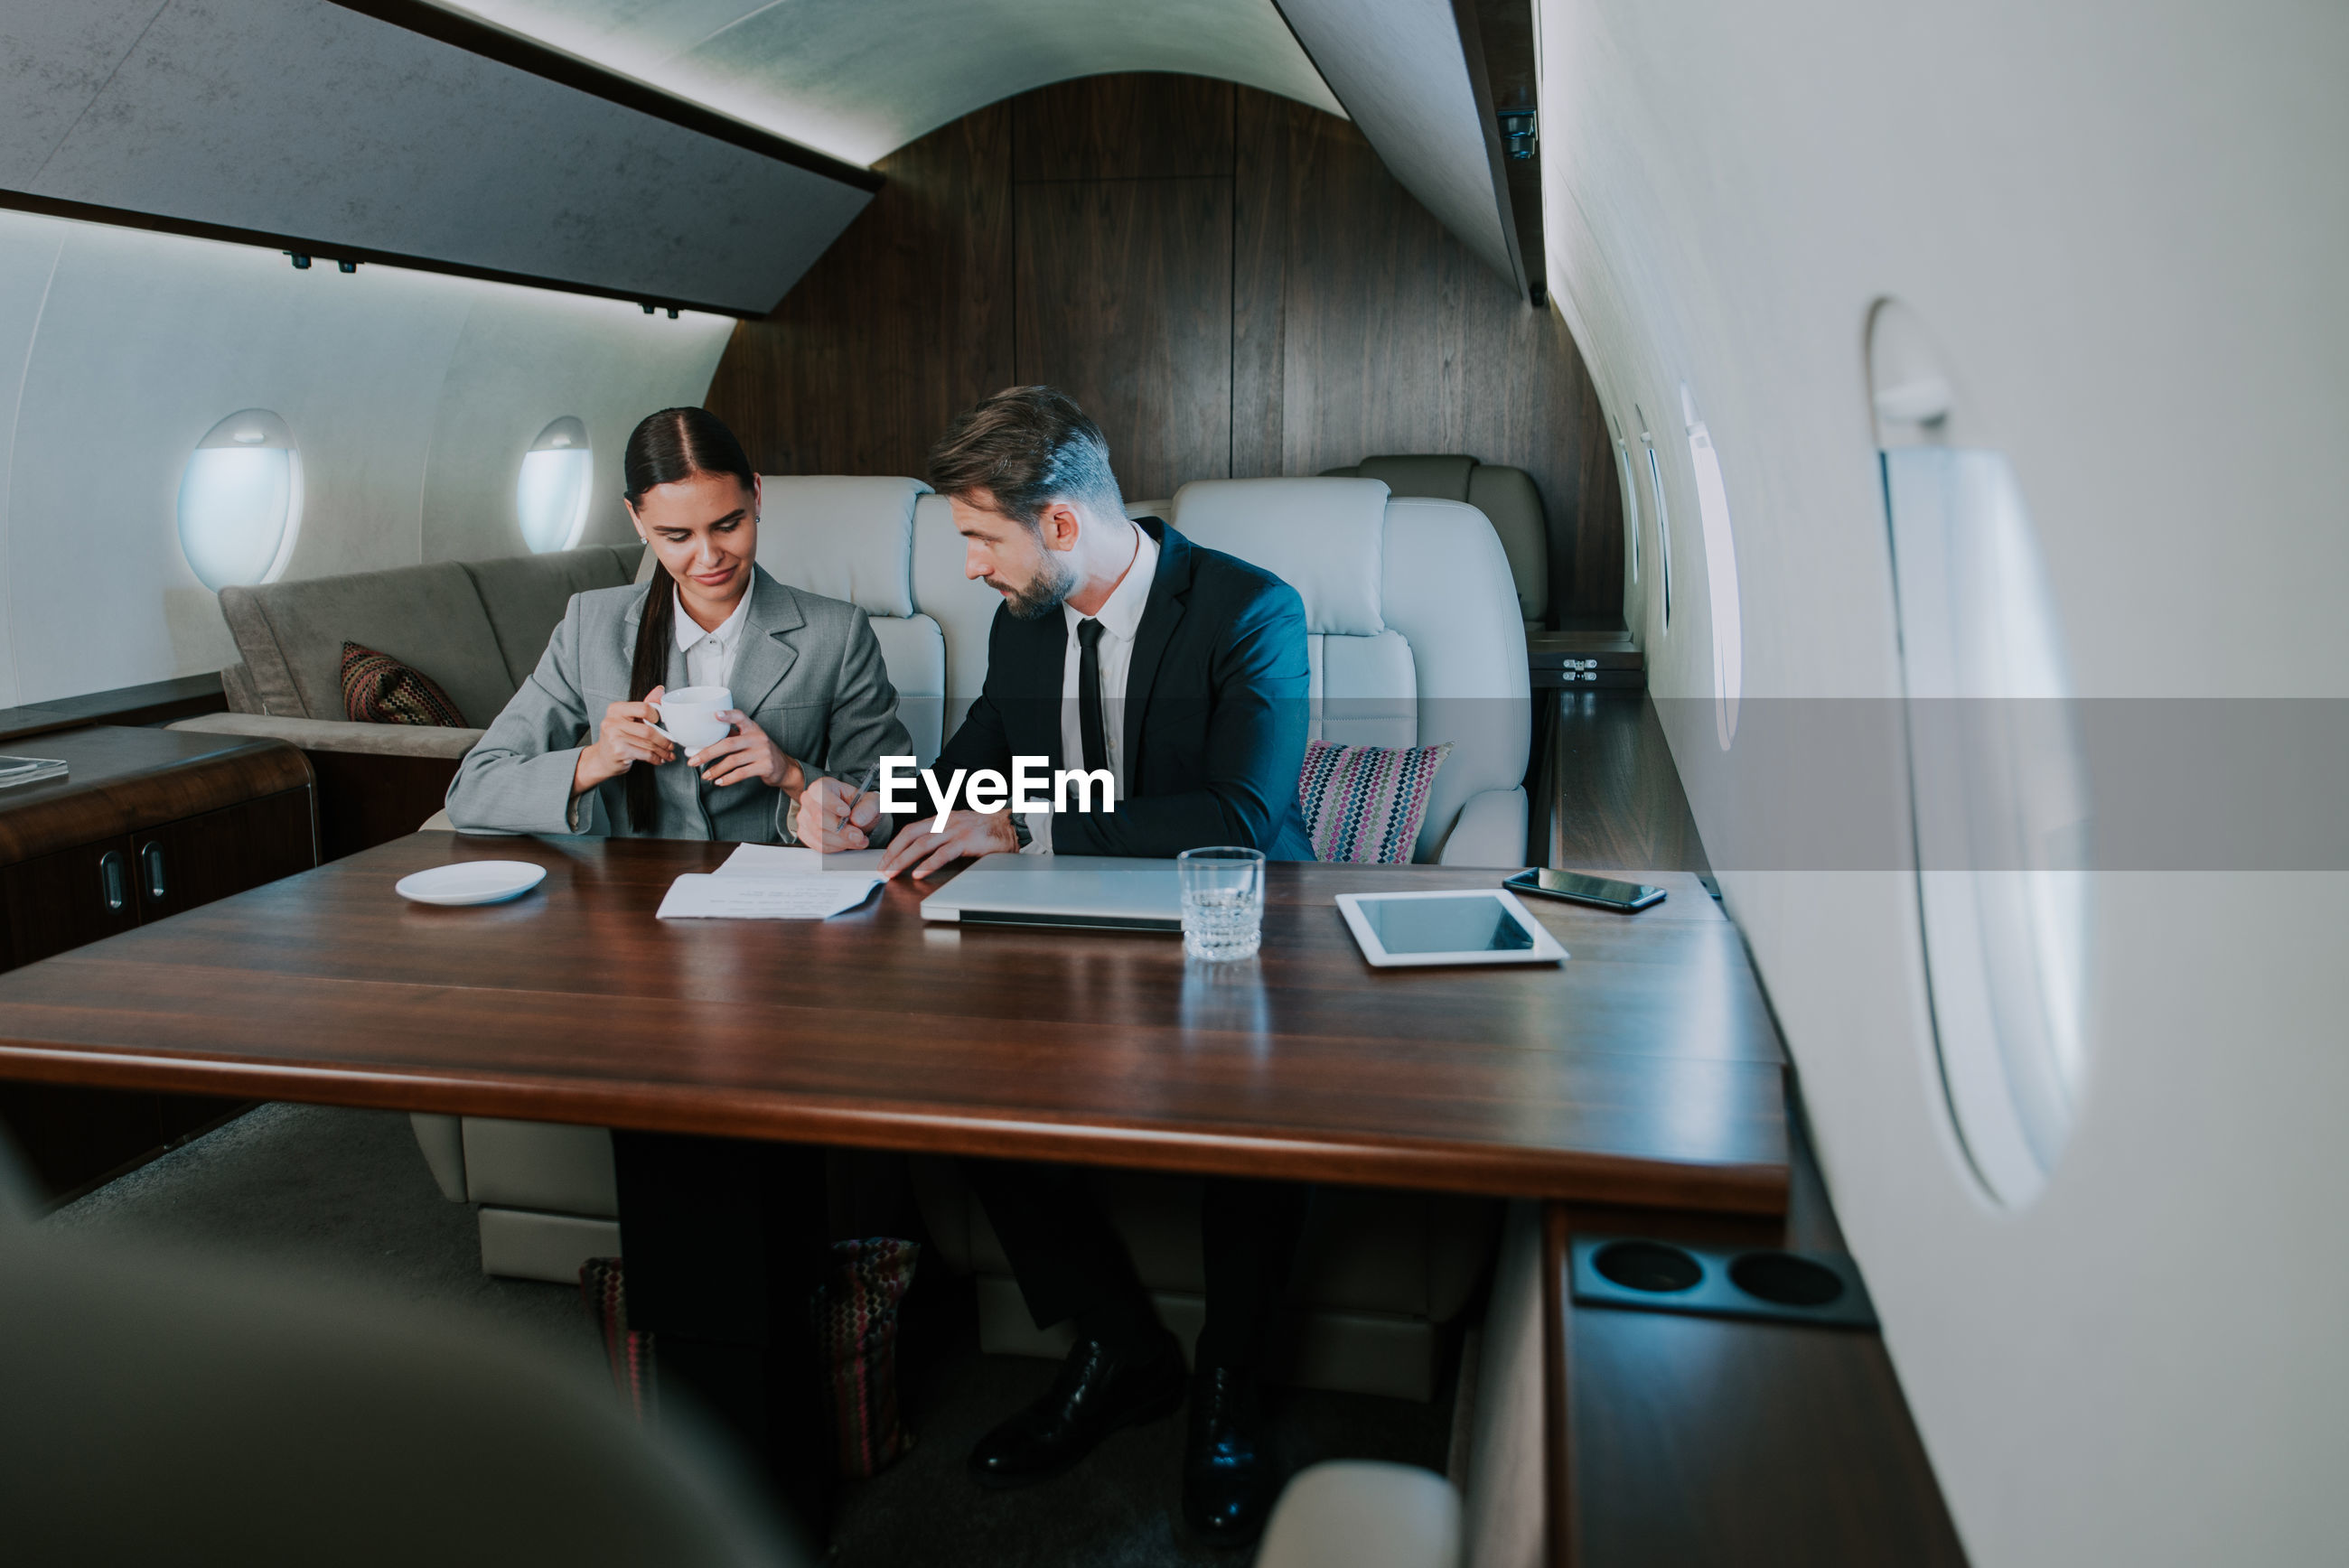 Business person sitting in airplane